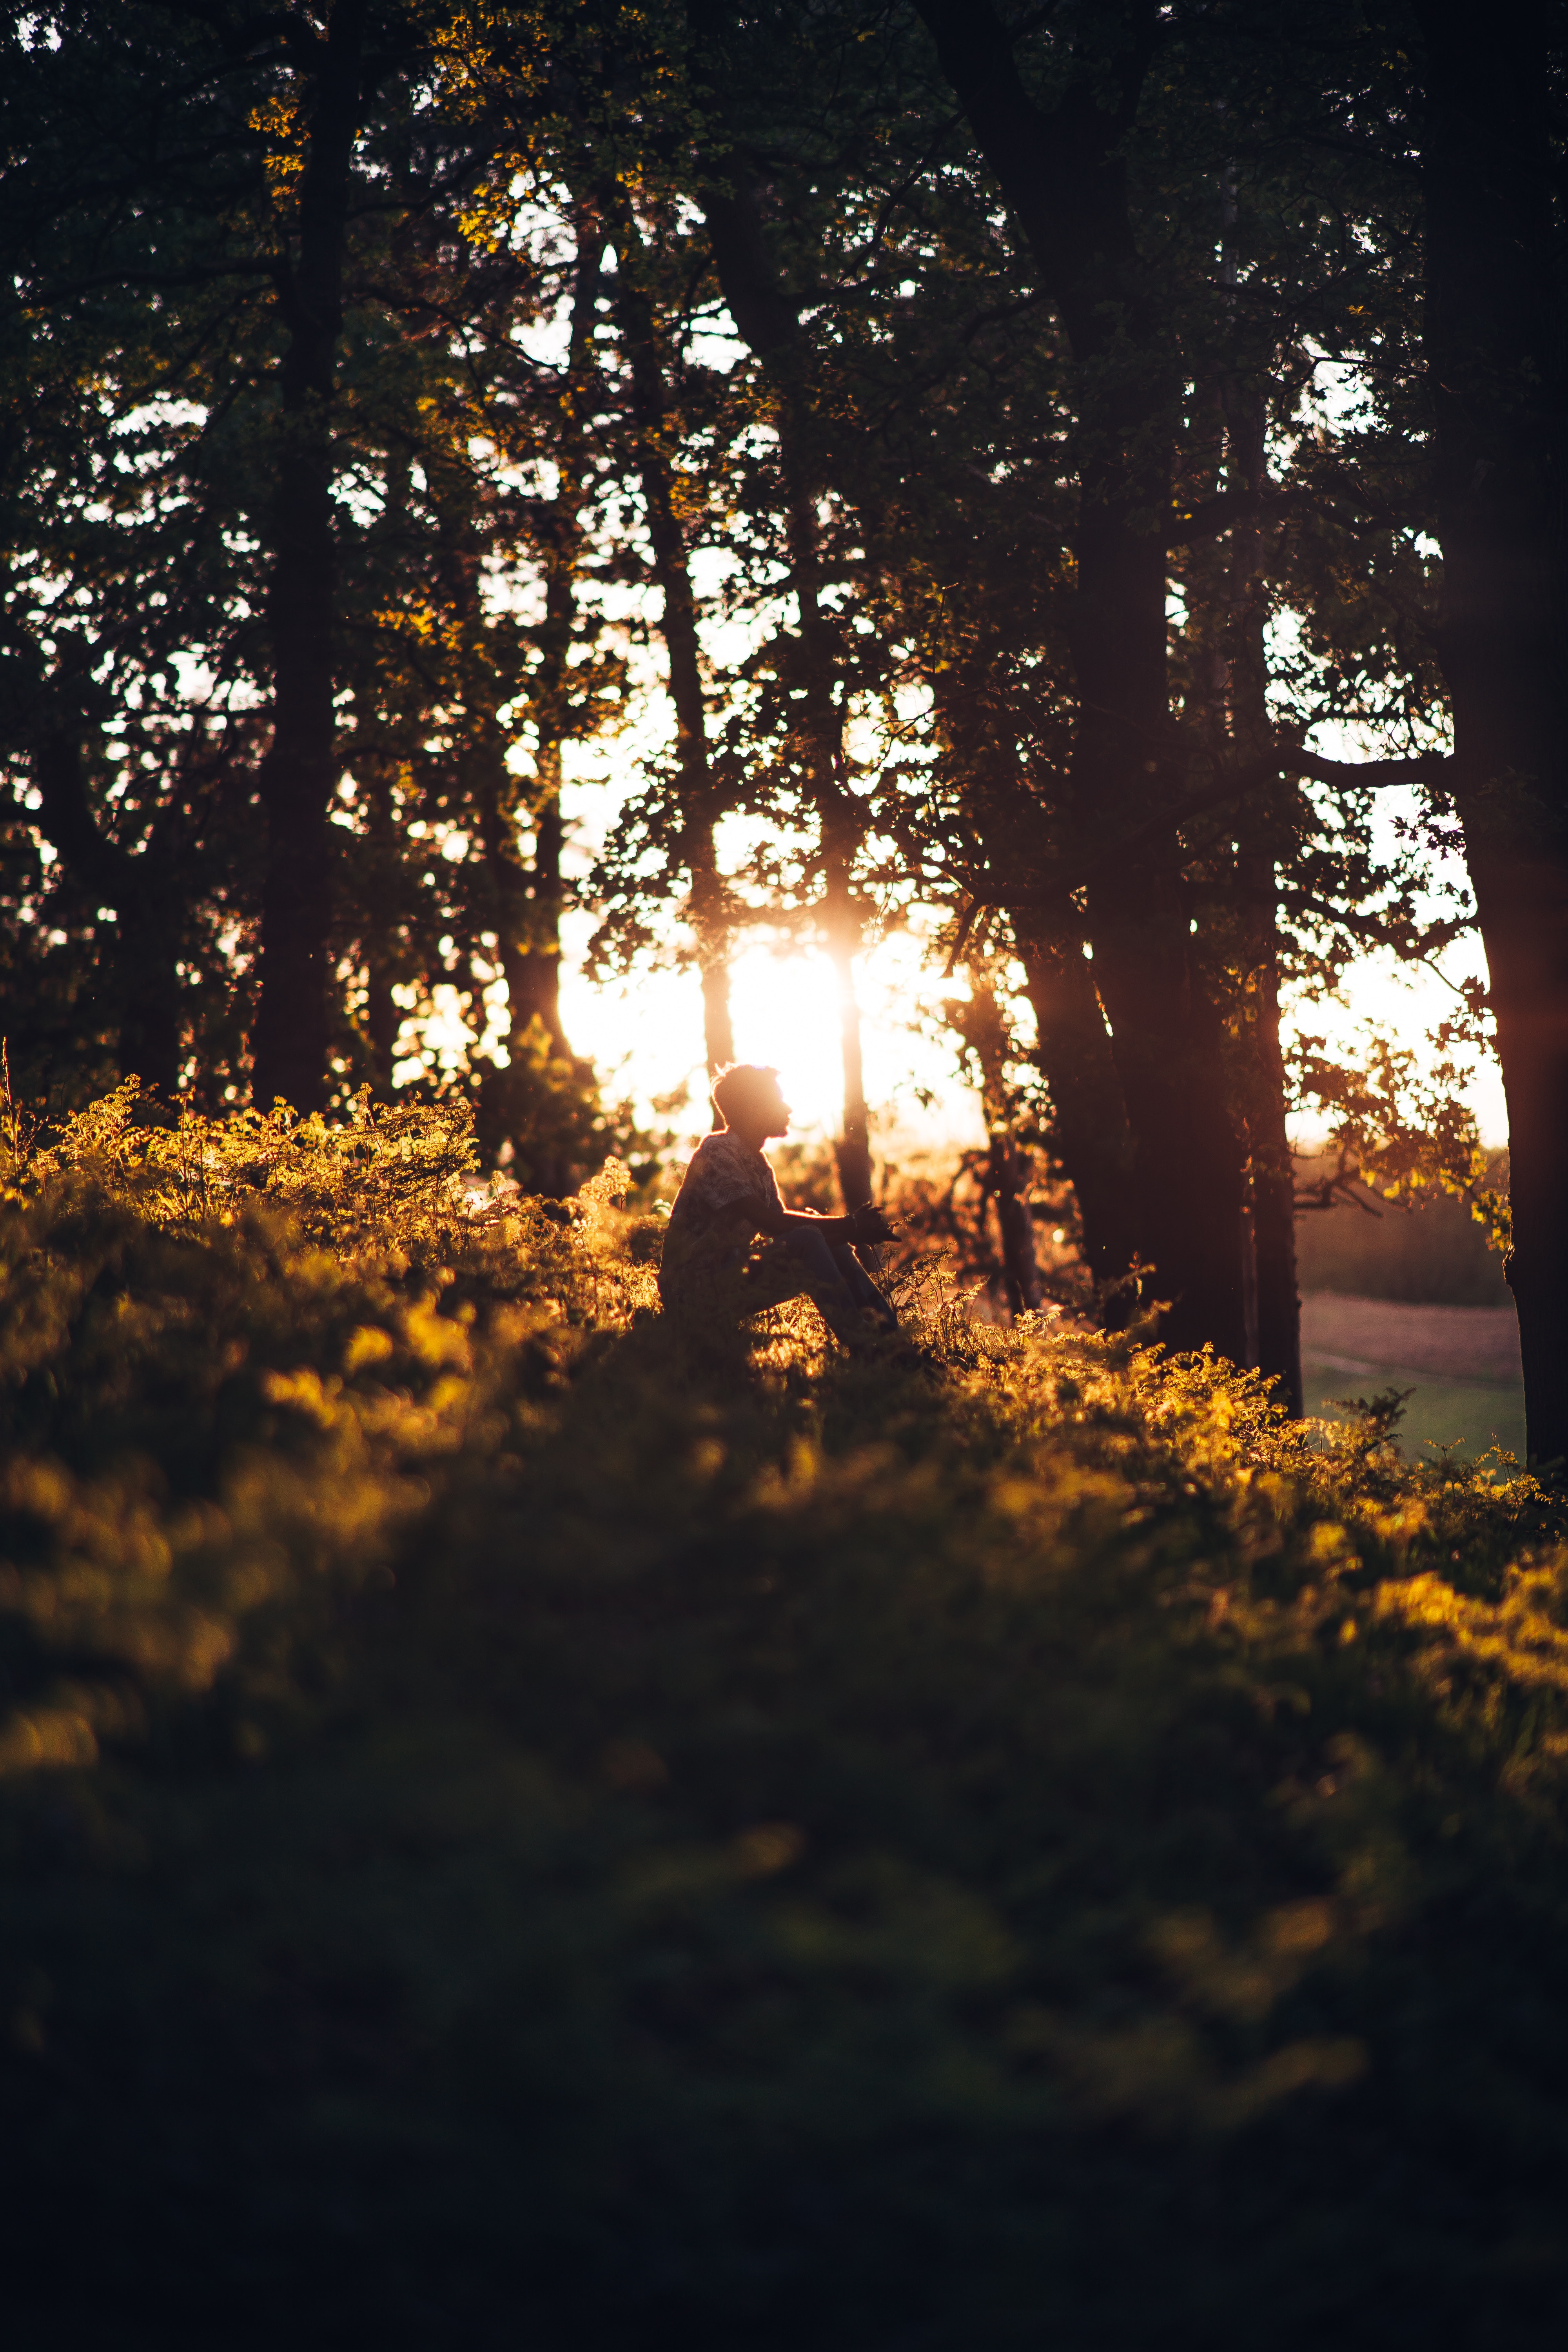 146933 download wallpaper Miscellanea, Miscellaneous, Human, Person, Forest, Shine, Light, Loneliness, Sun screensavers and pictures for free